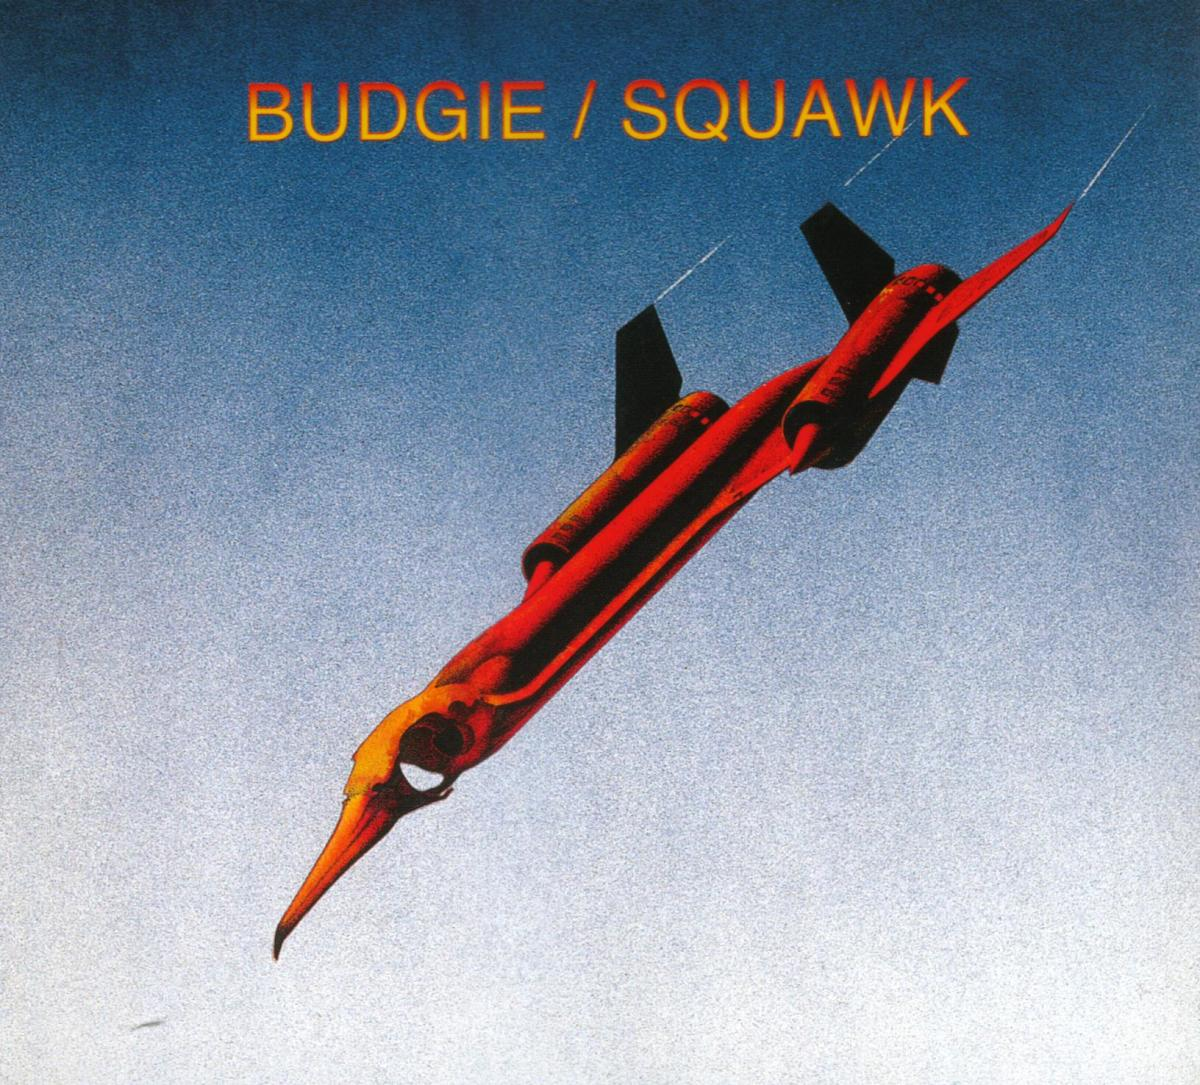 "Budgie ""Squawk"" Kapp Records KS-3669 12"" Vinyl Record, US Pressing (1972) Album Cover Art & Design by Roger Dean"